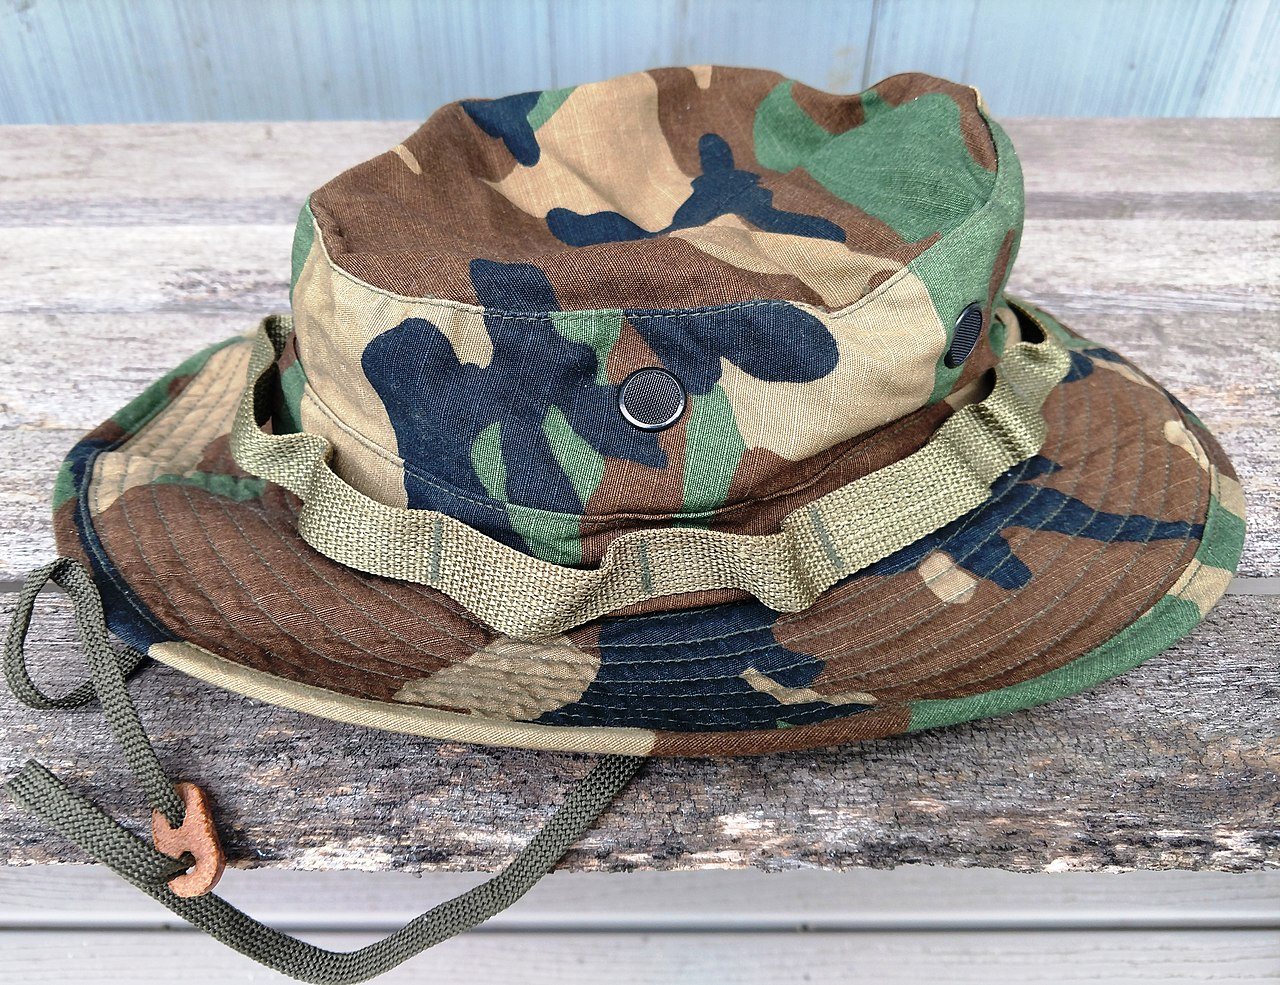 U.S. Army issue boonie hat in the BDU camouflage pattern, circa 1994